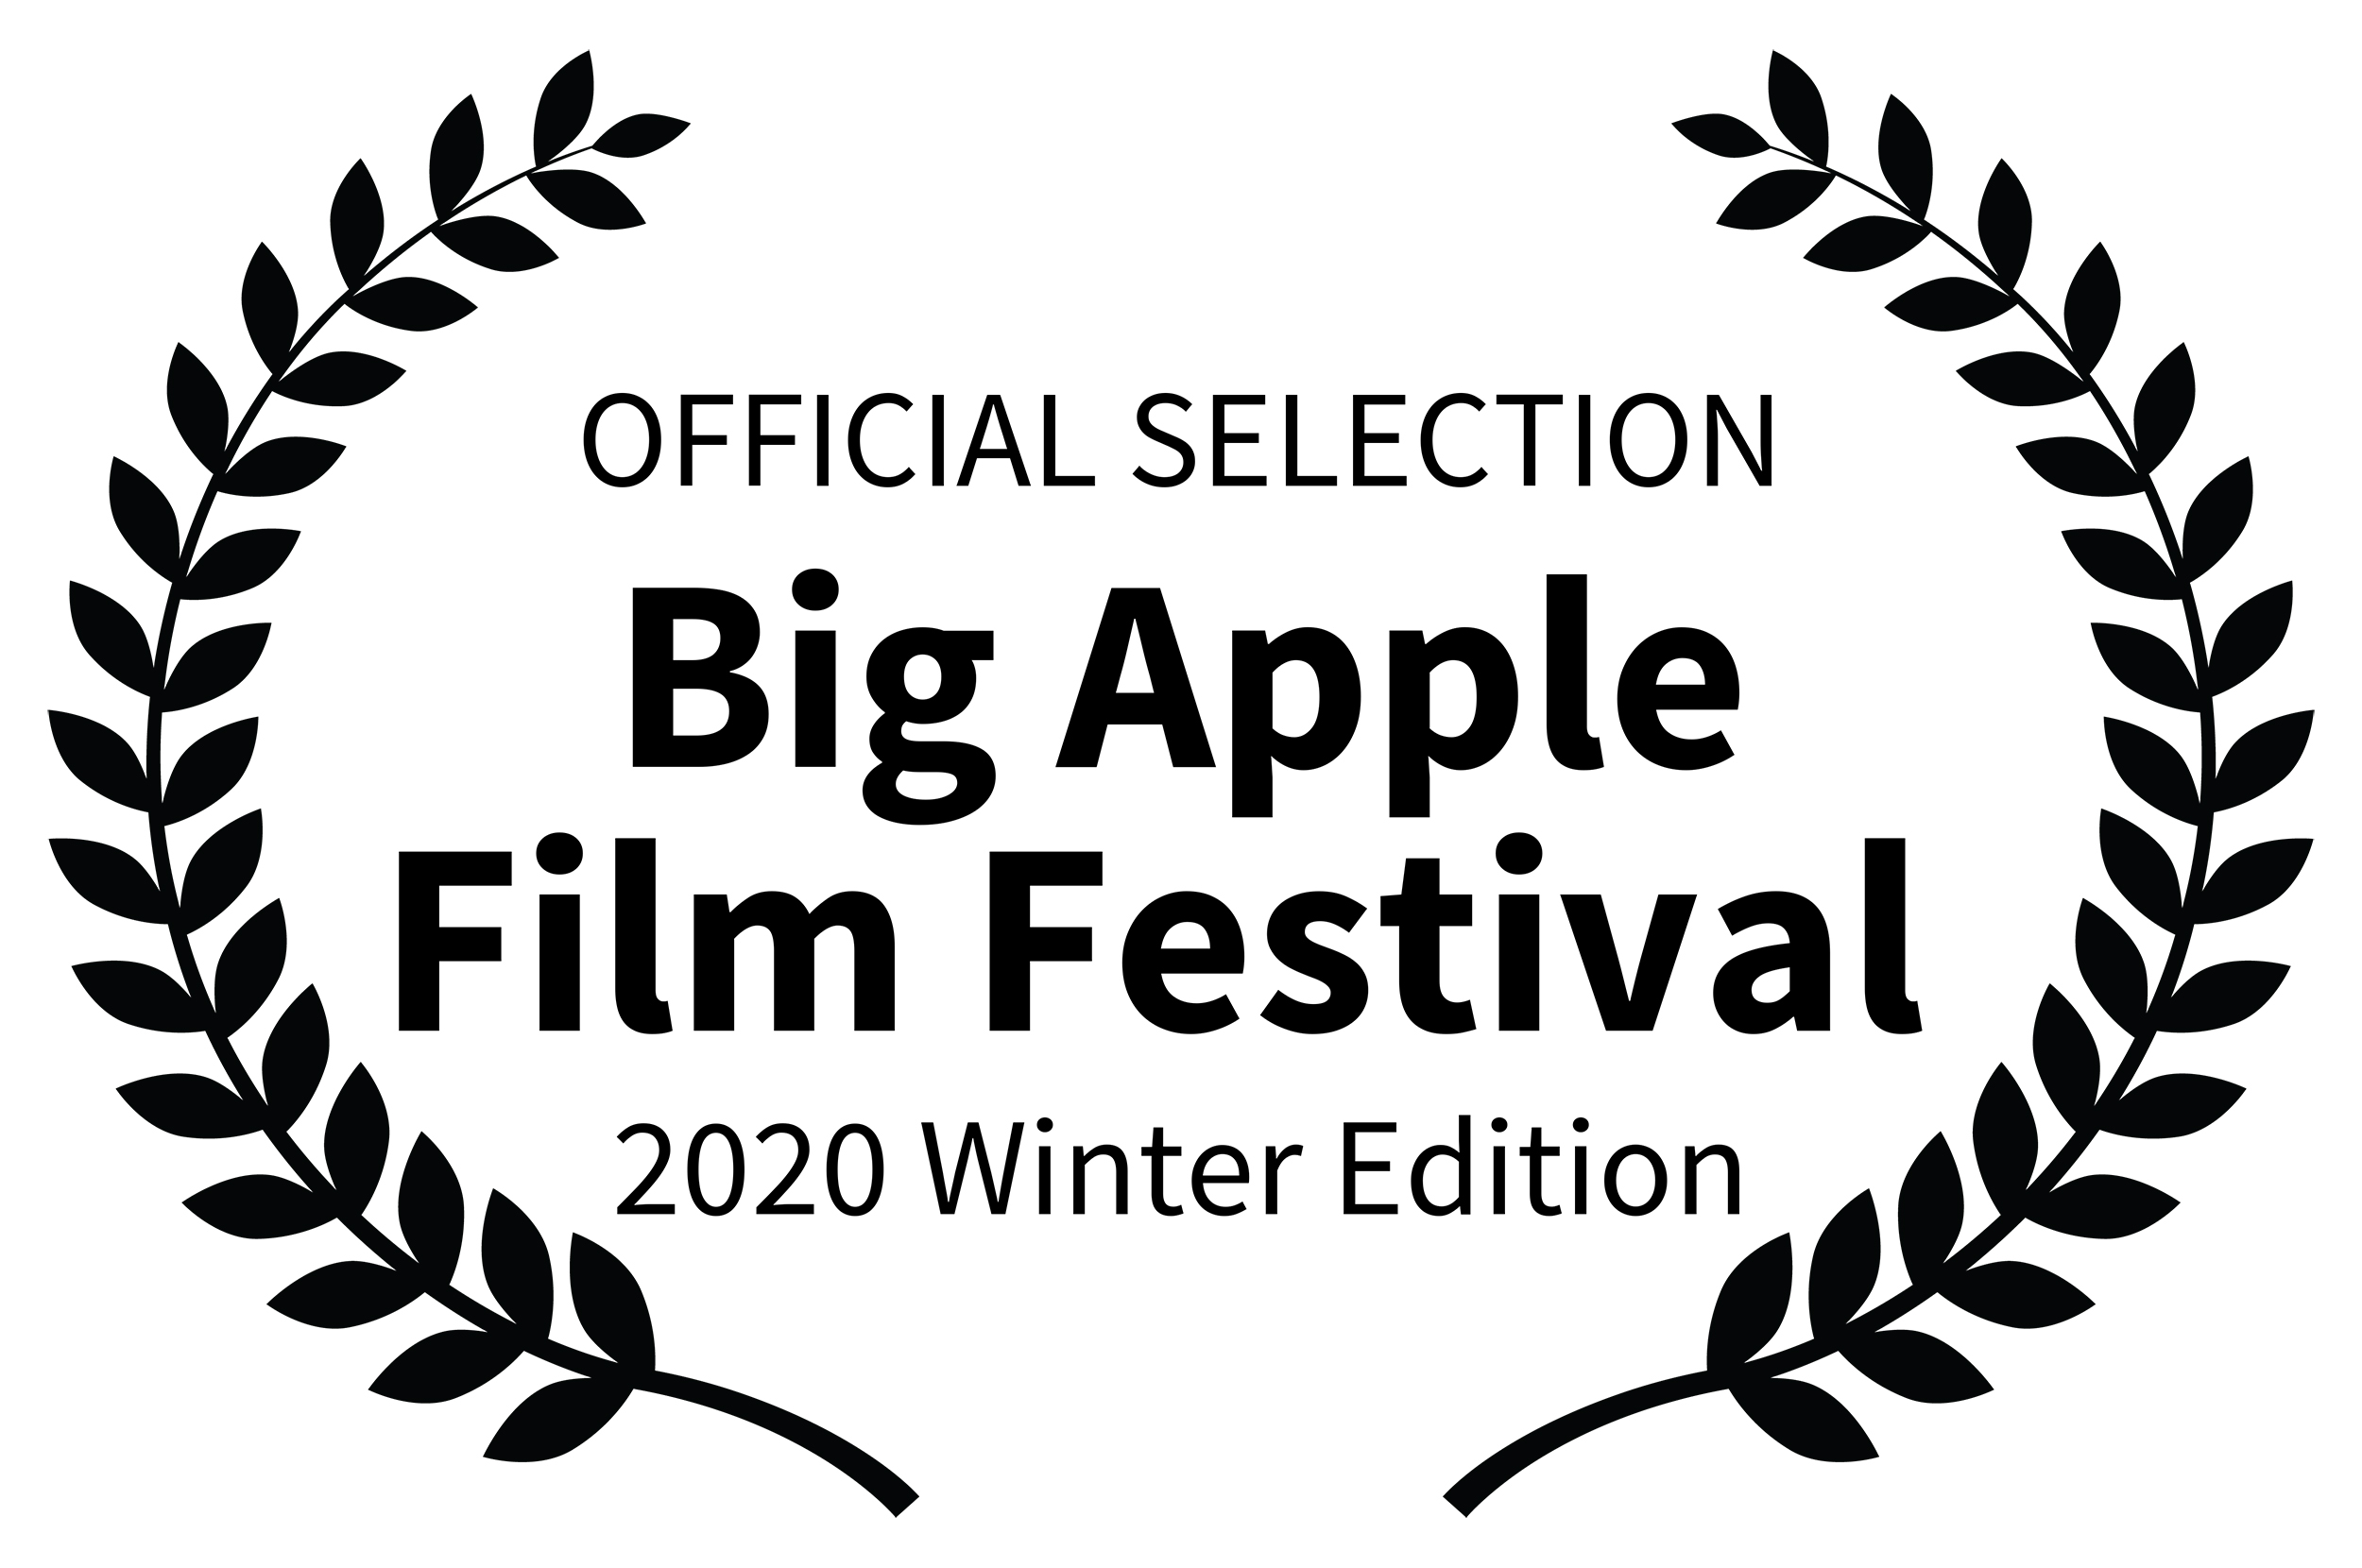 OFFICIALSELECTION-BigAppleFilmFestival-2020WinterEdition_small